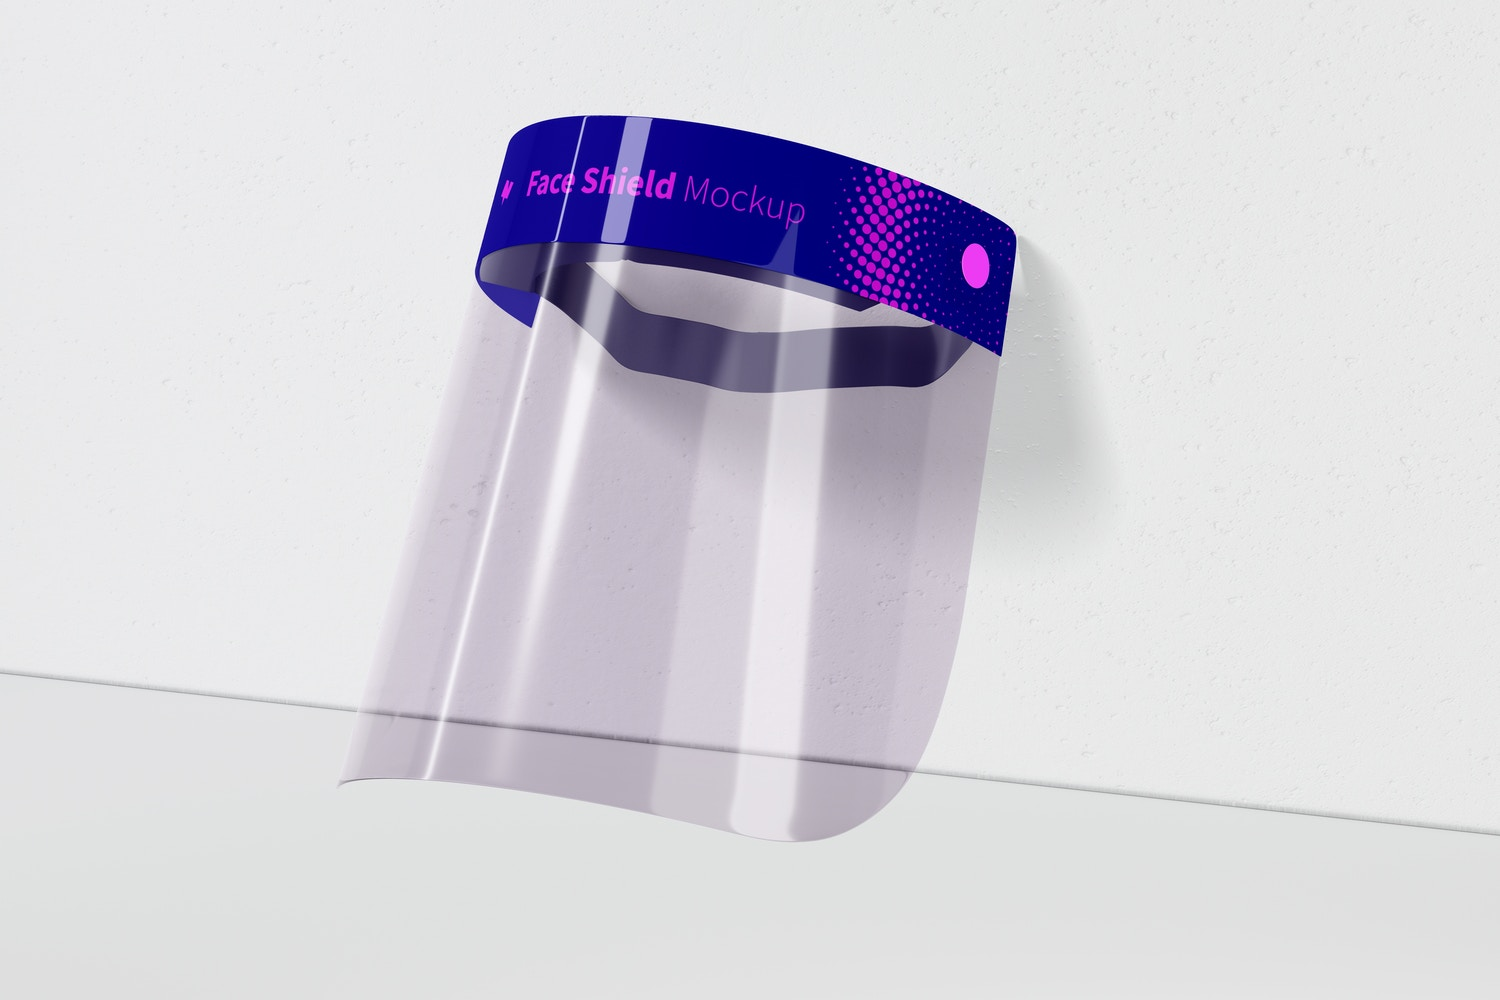 Face Shield Mockup, Perspective View